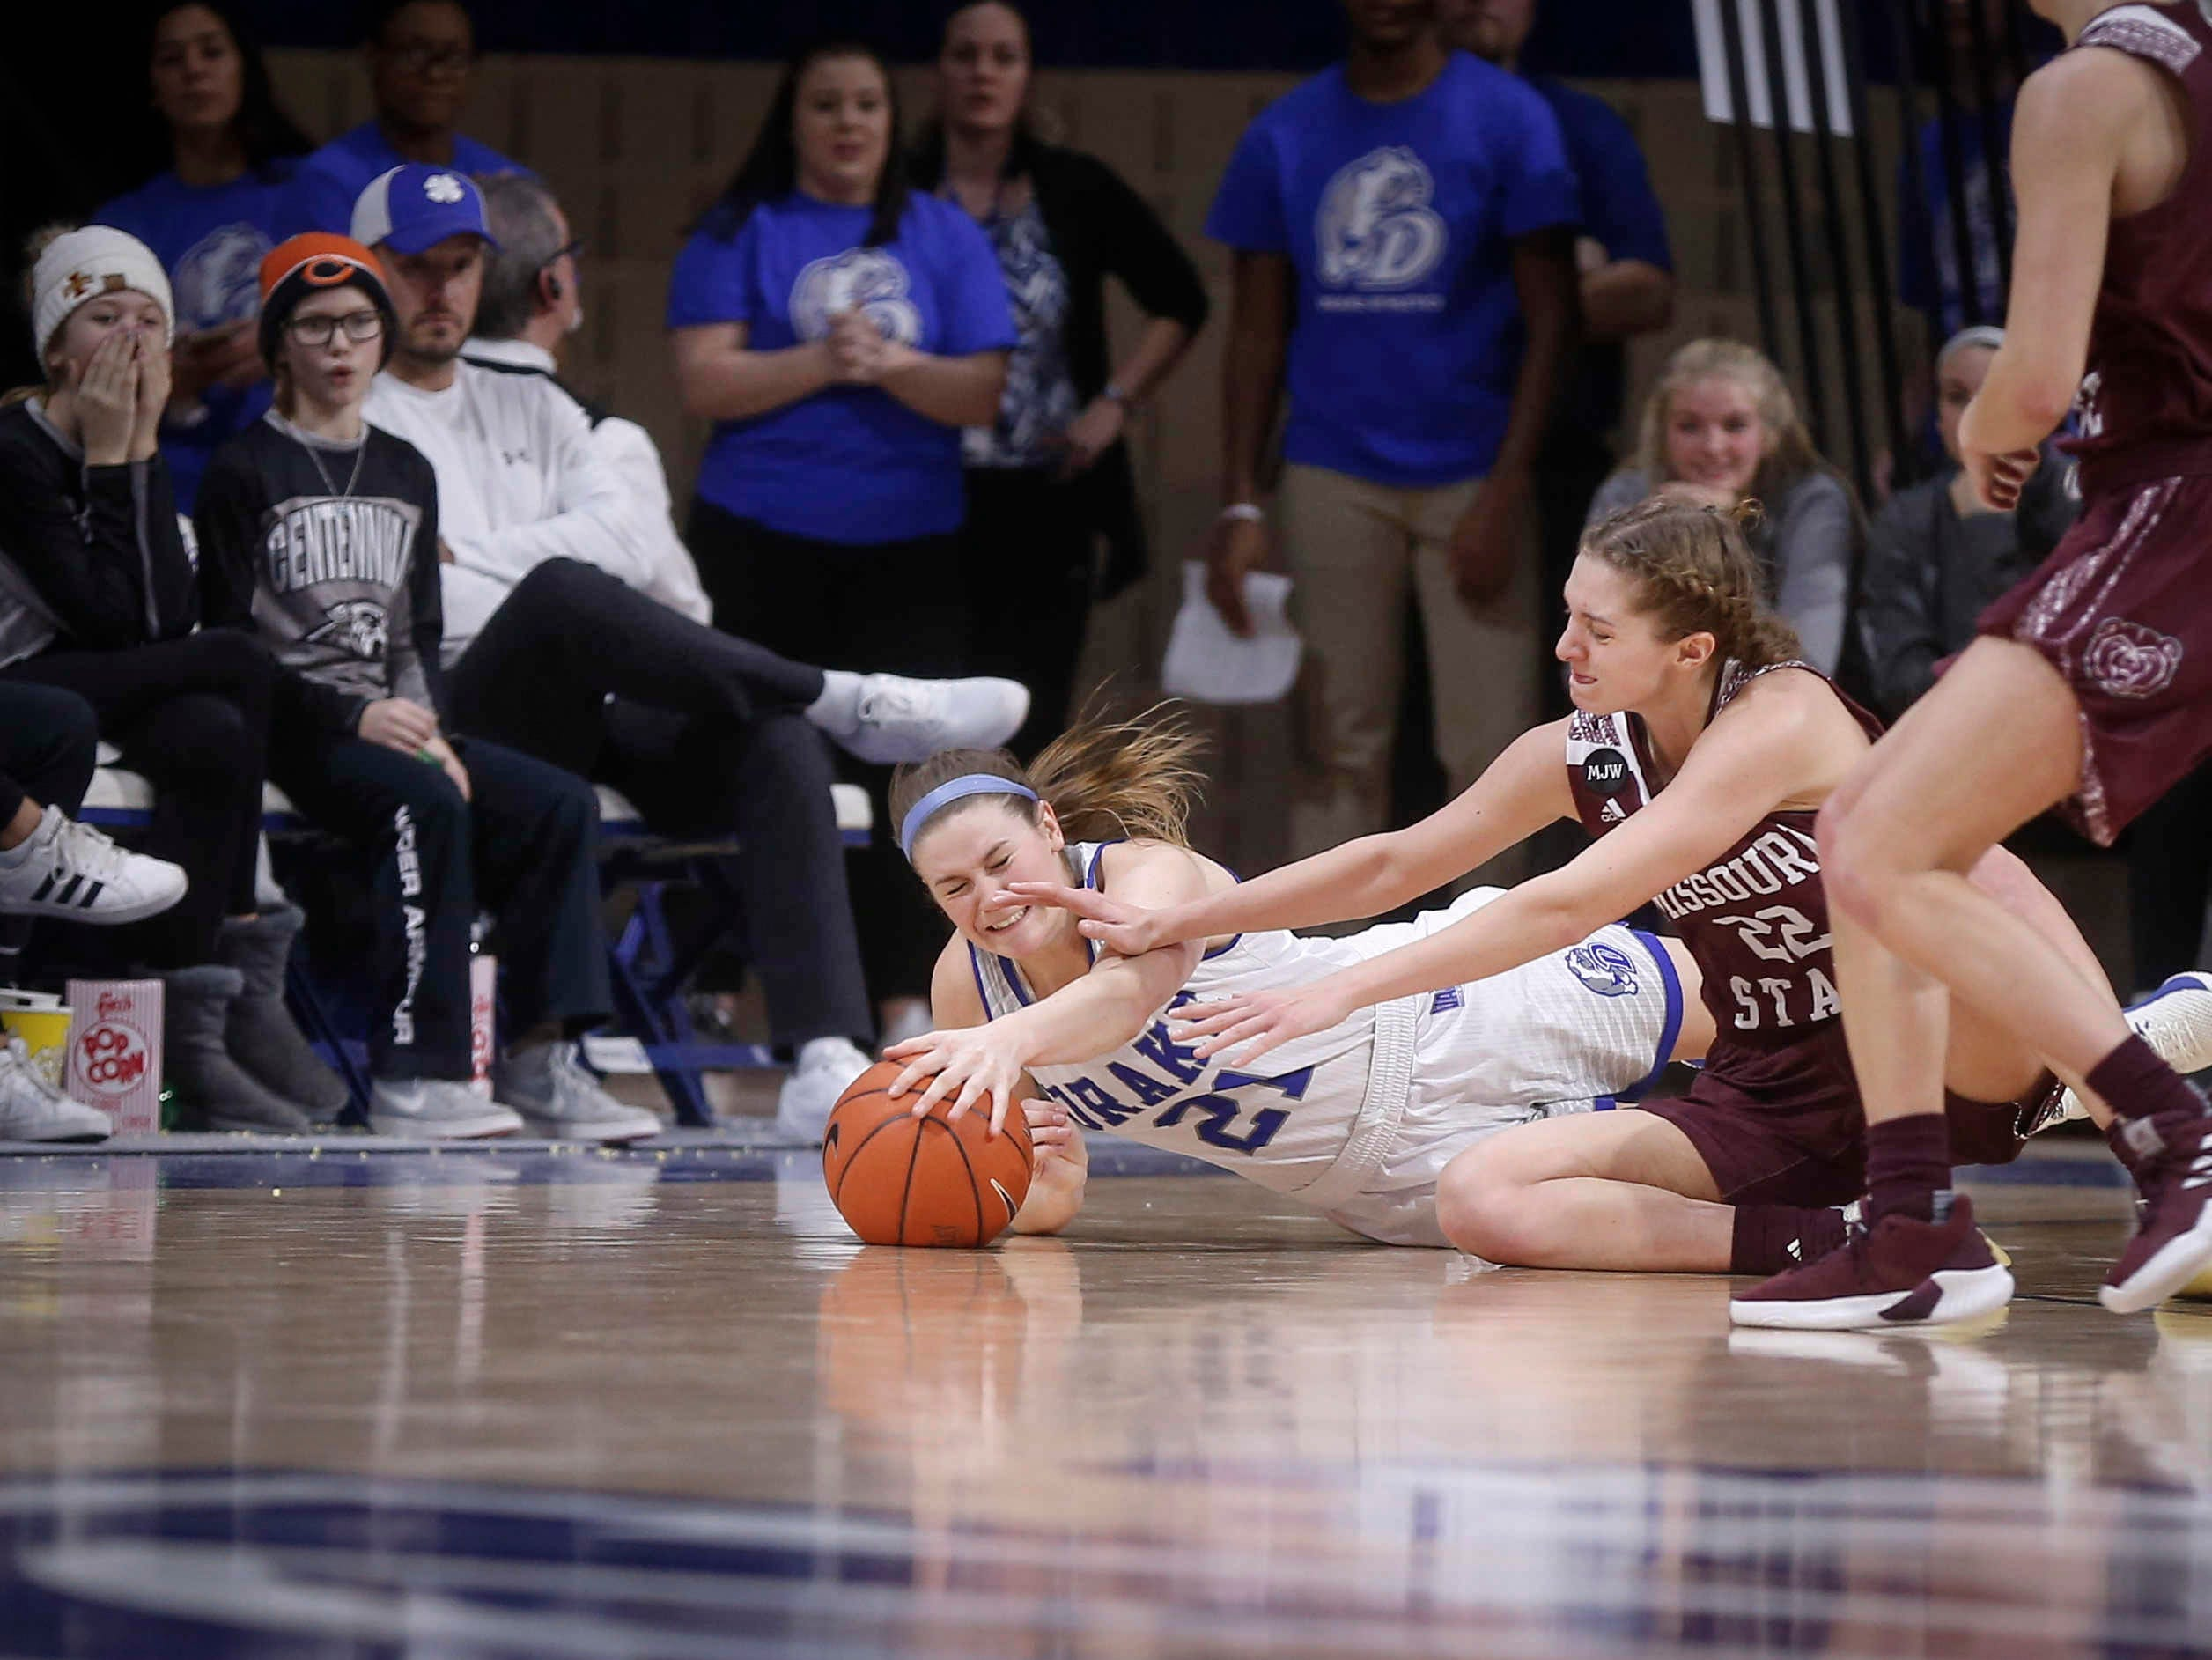 Drake senior Sammie Bachrodt battles Missouri State's Alexa Willard for a loose ball late in the game on Friday, Feb. 1, 2019, at Knapp Auditorium in Des Moines.